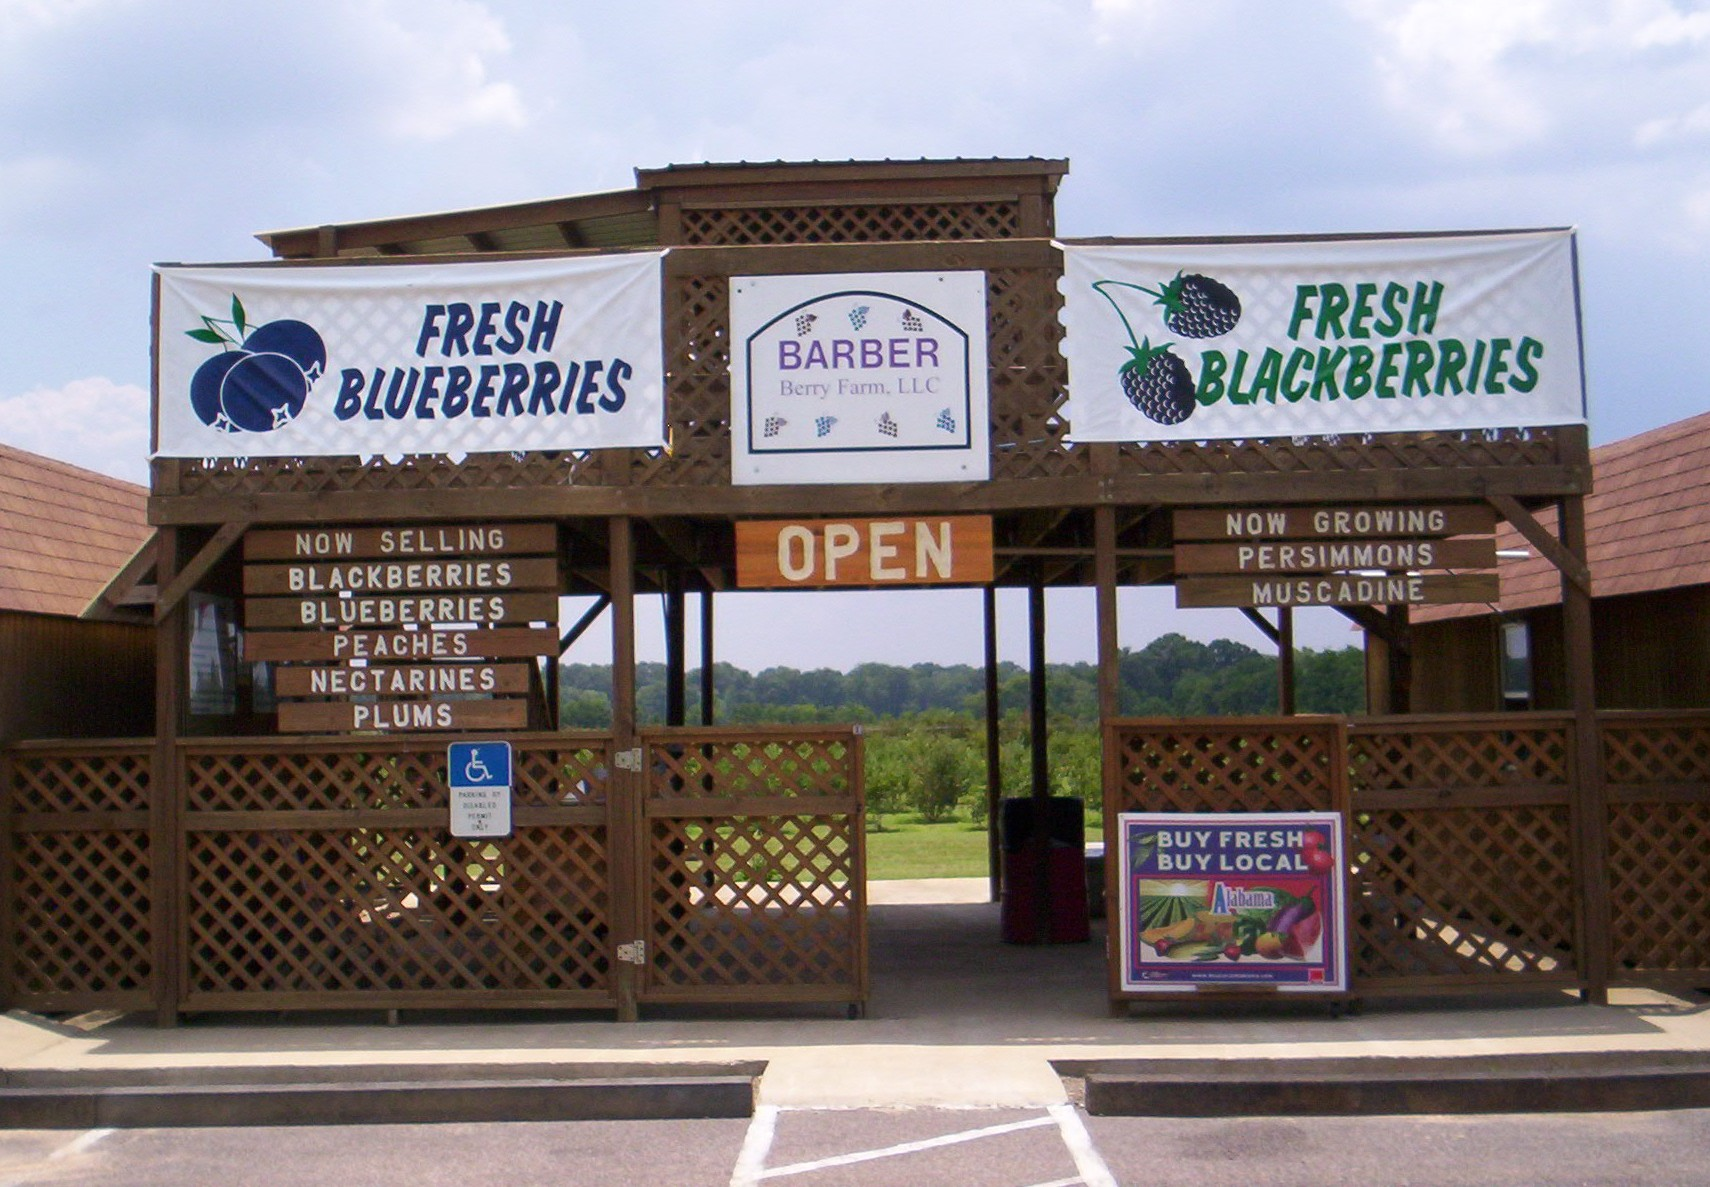 Barber Berry Farm, LLC